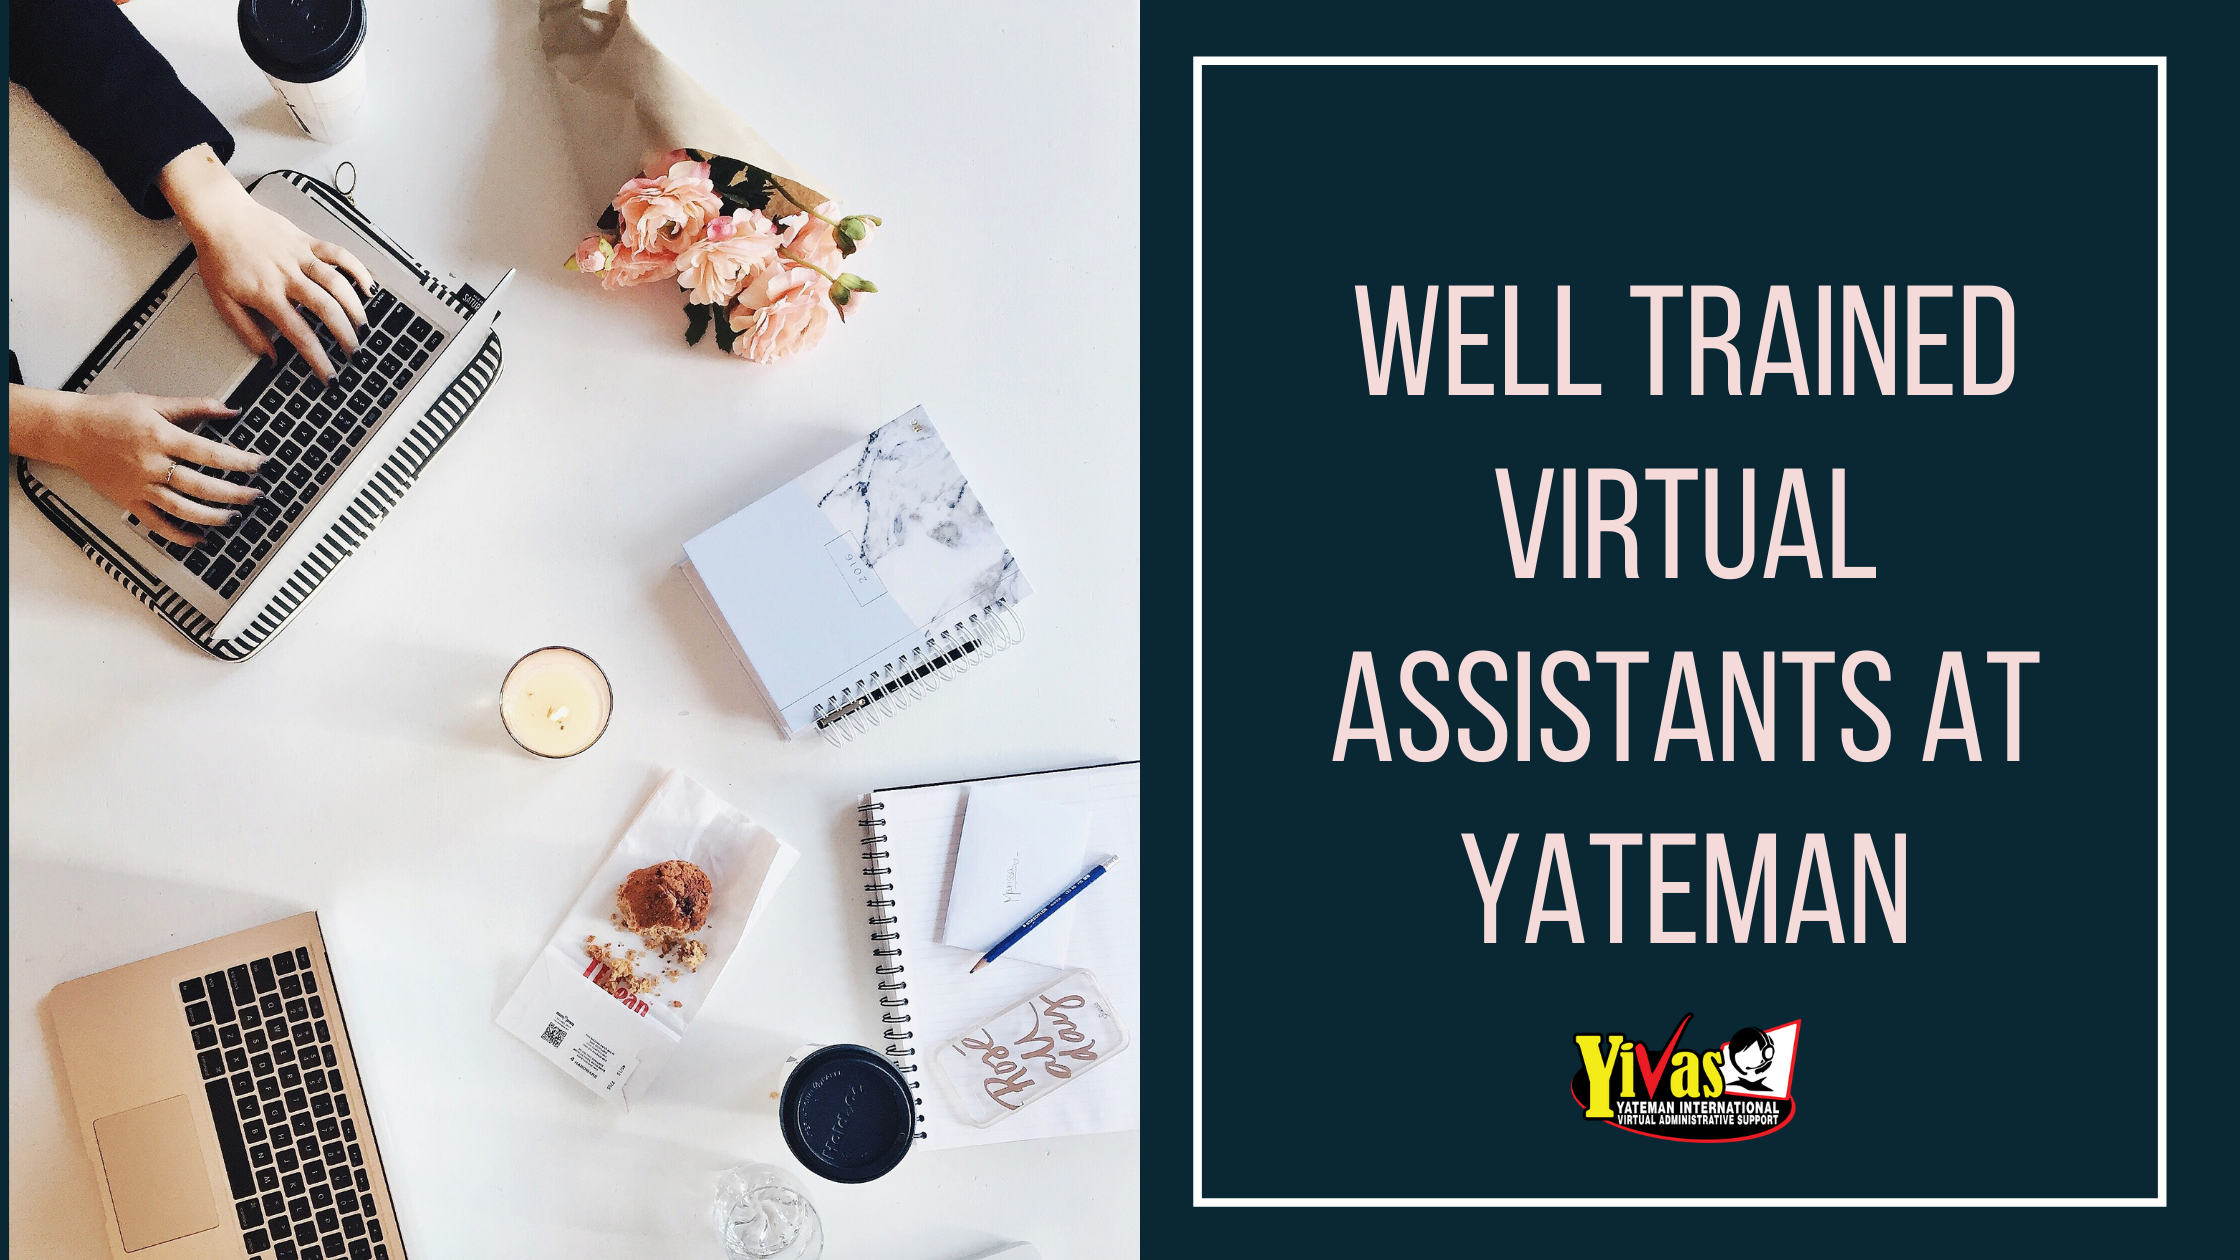 Well Trained Virtual Assistants at Yateman